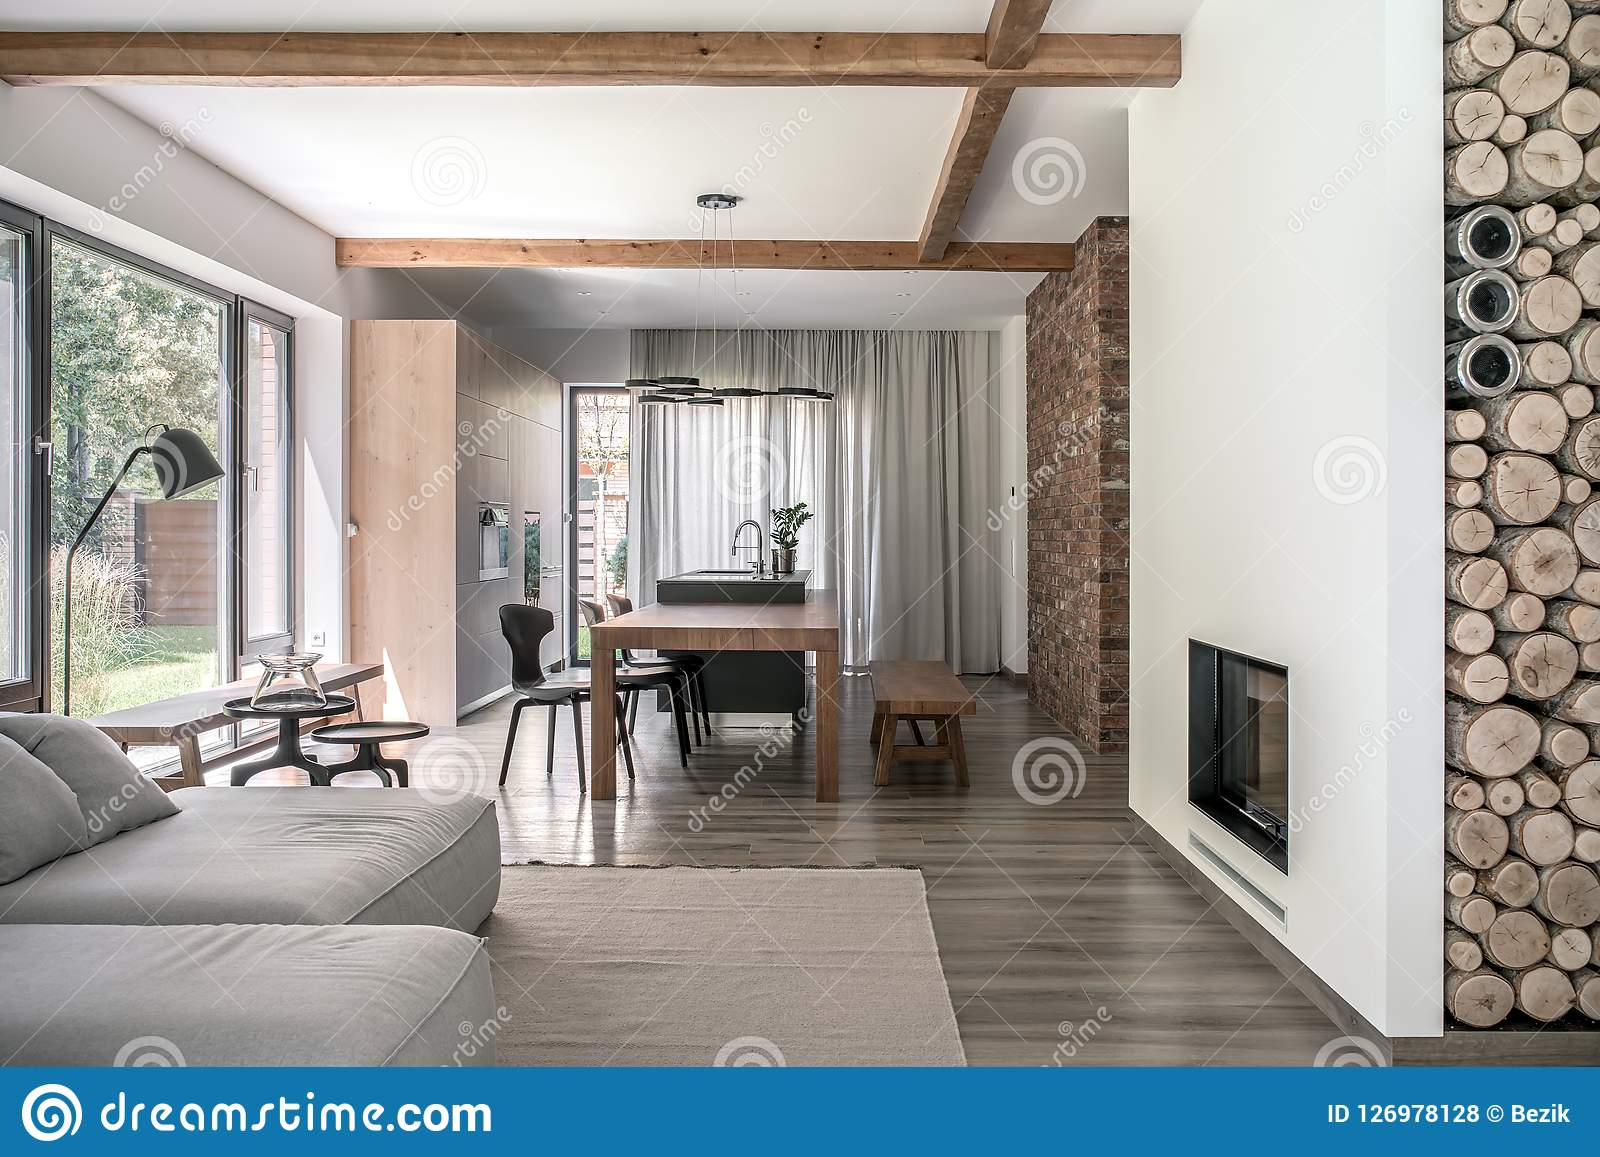 stylish interior in modern style with wooden beams stock photo rh dreamstime com